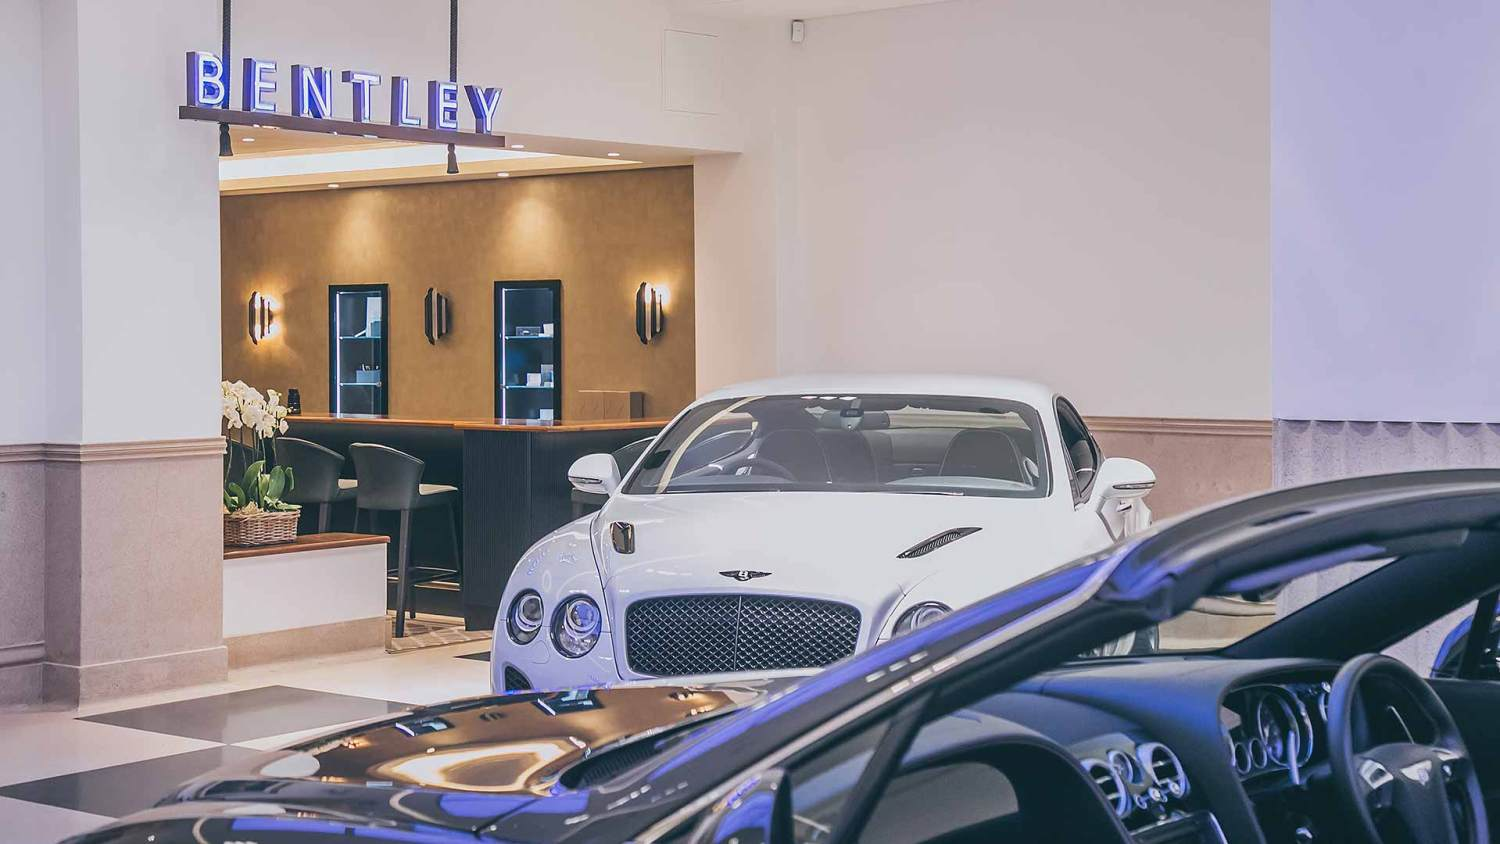 London supercar dealer showroom